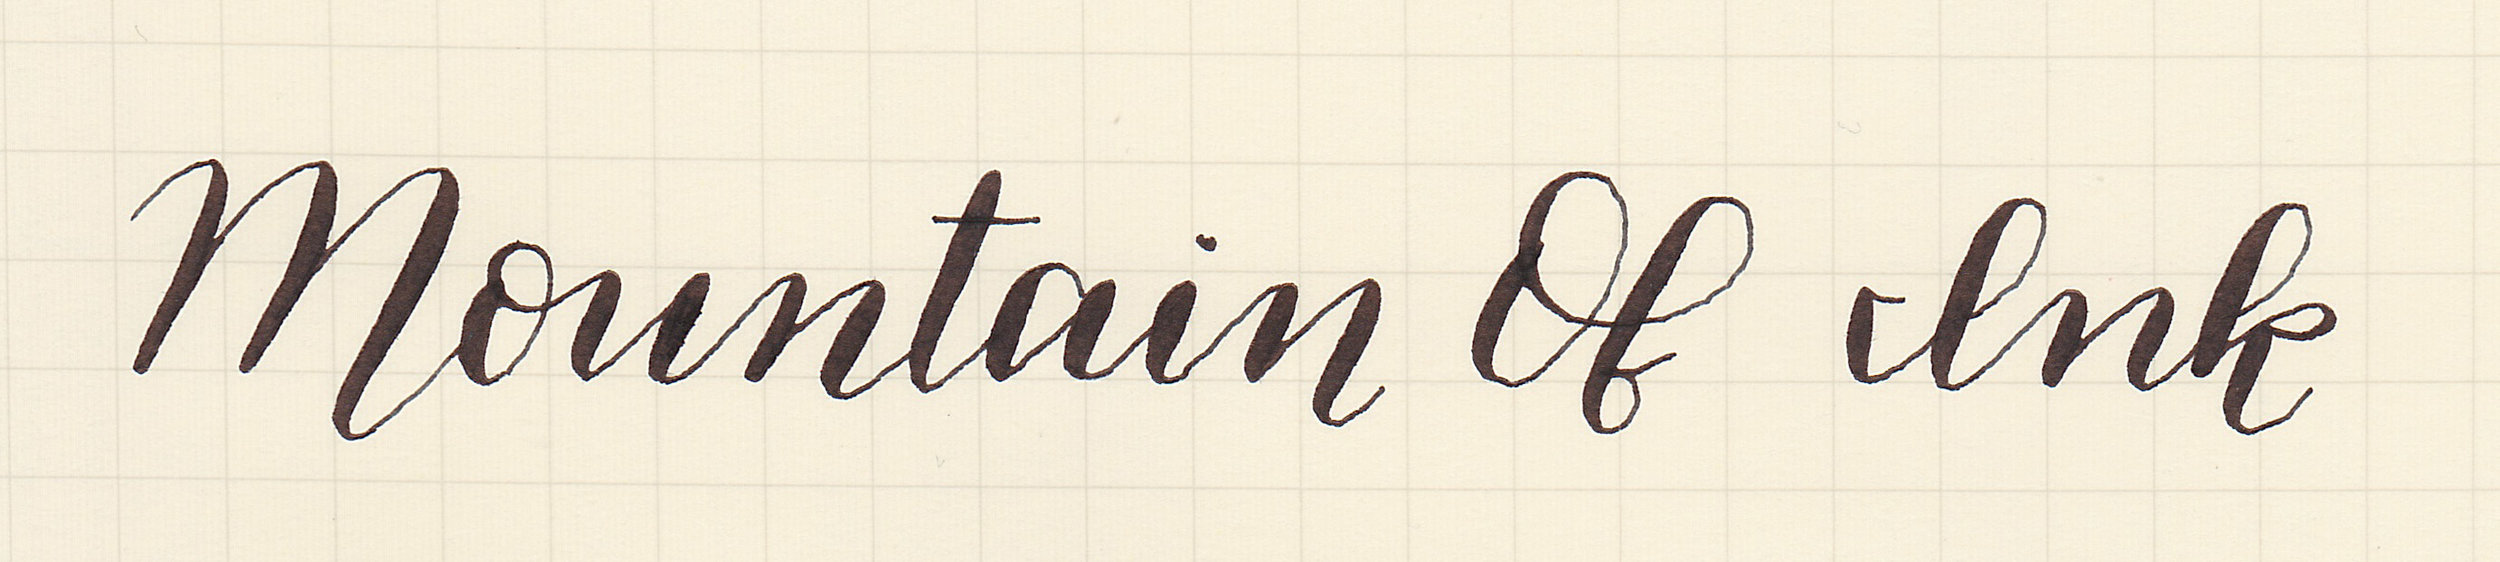 Italic Cursive Flex, written with a Flexible Nib Factory Zebra G nib unit.